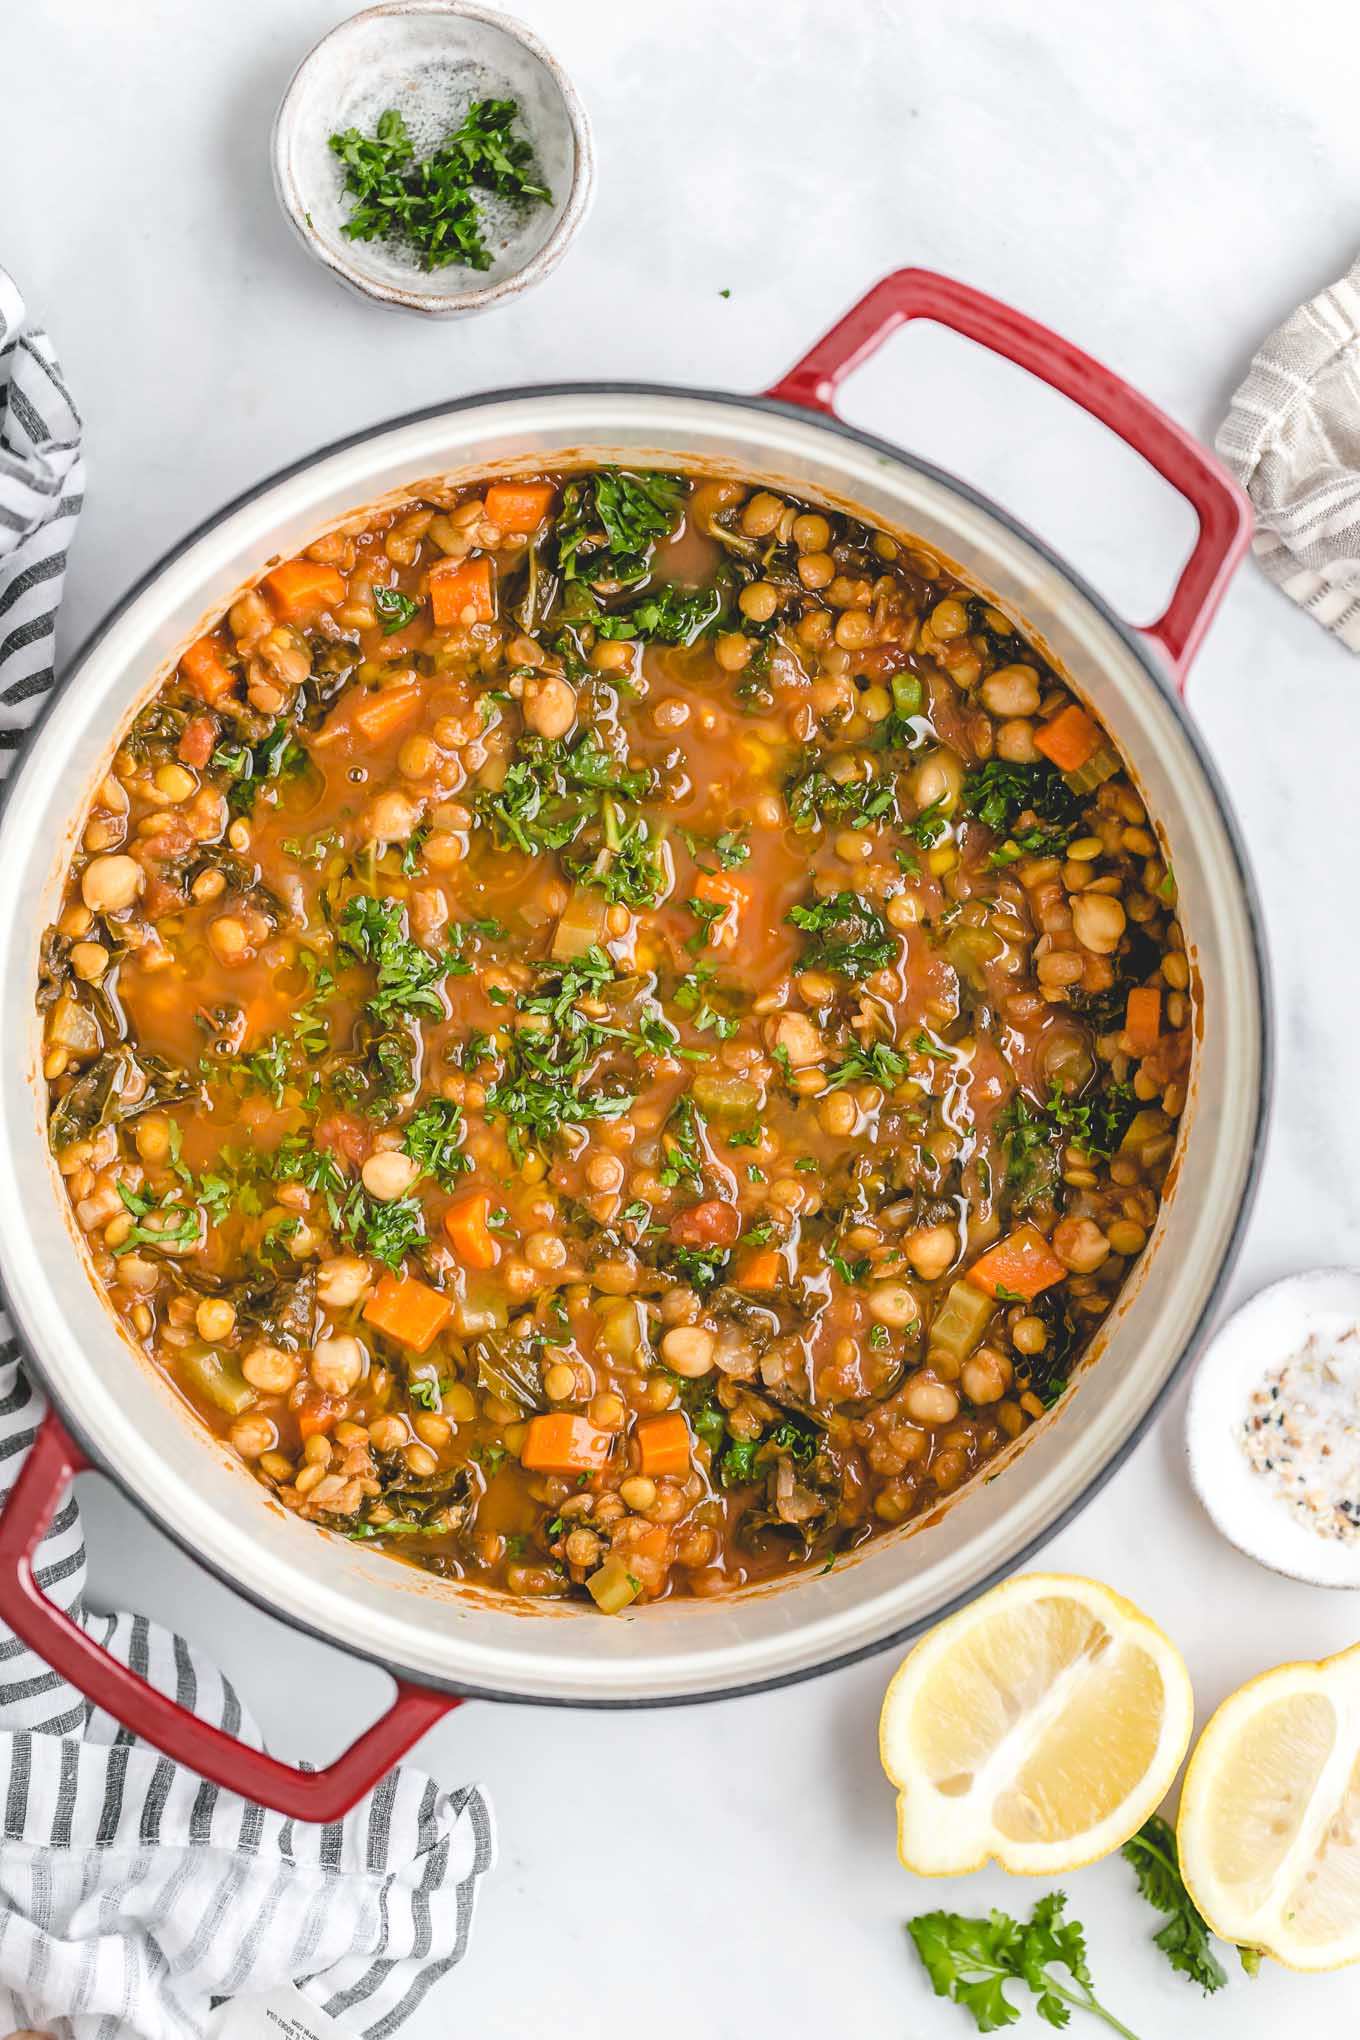 Vegetarian Lentil and Chickpea Soup - a vegetarian lentil soup recipe full of rich Moroccan-inspired flavors that's packed with fiber, veggies, and protein! Great for meal prep!